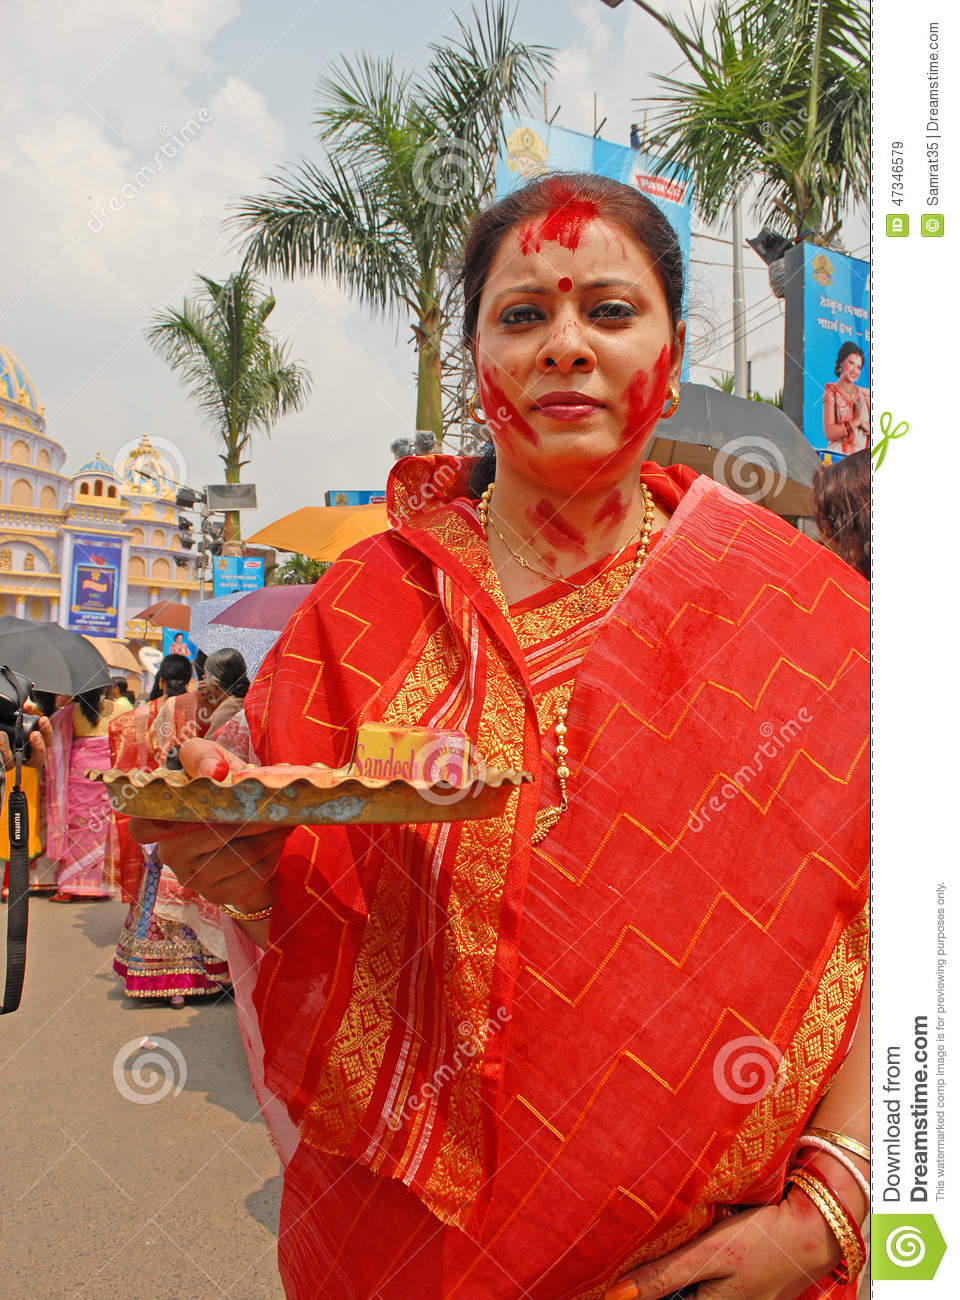 vermilion hindu single women Bindi or tika bindi is derived from the sanskrit word bindu, which means a 'dot' it is usually a red dot made with vermilion powder and is worn by the hindu women between their eyebrows on their forehead.